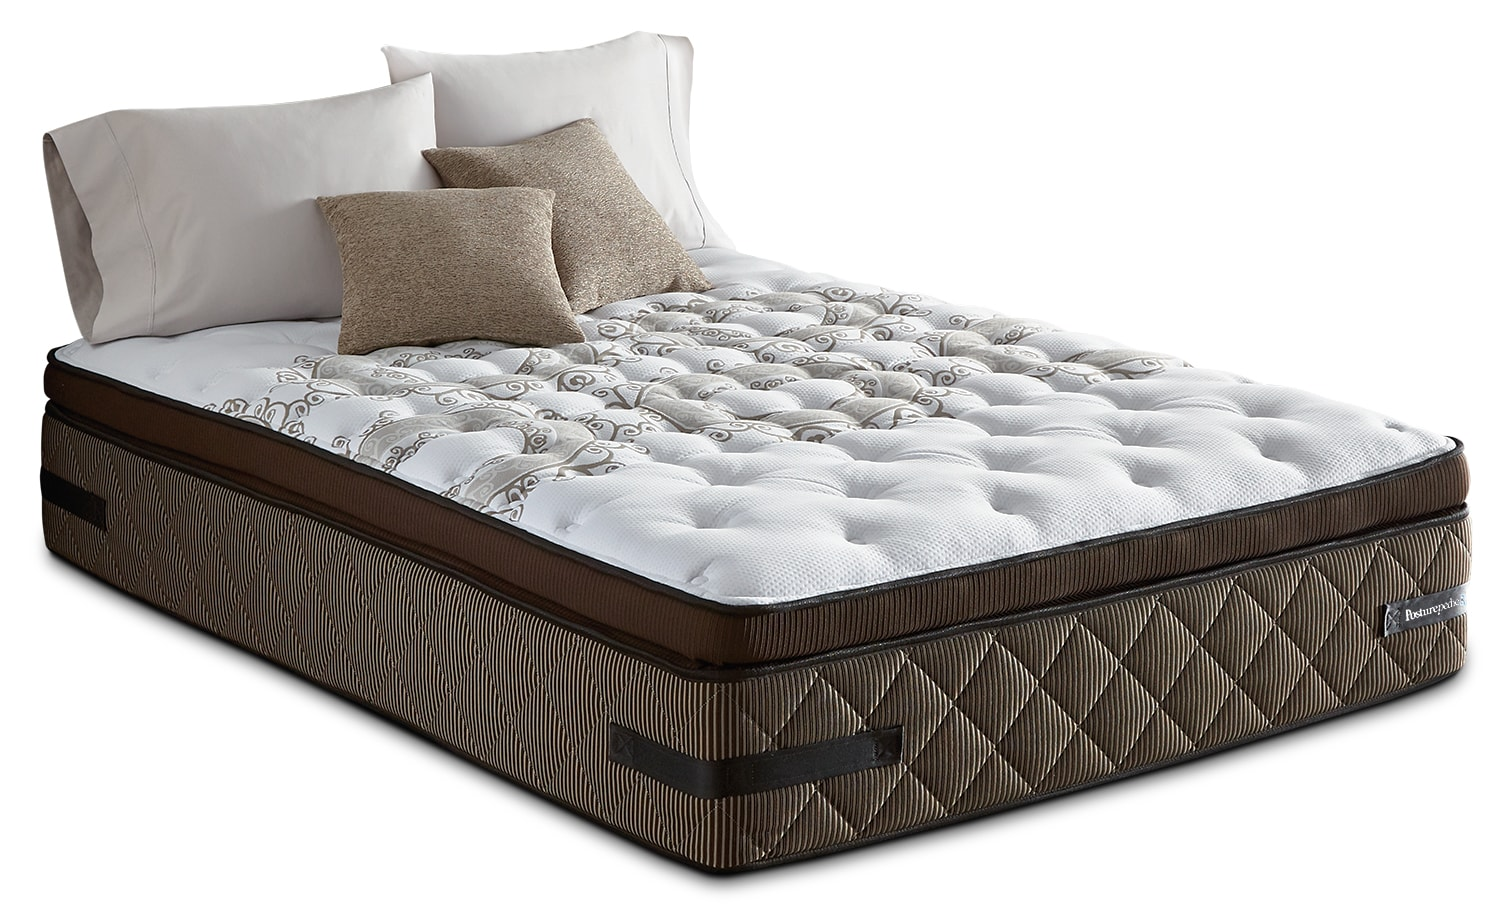 Sealy Crown Jewel Sunsera Euro Pillow-Top Firm Queen Mattress